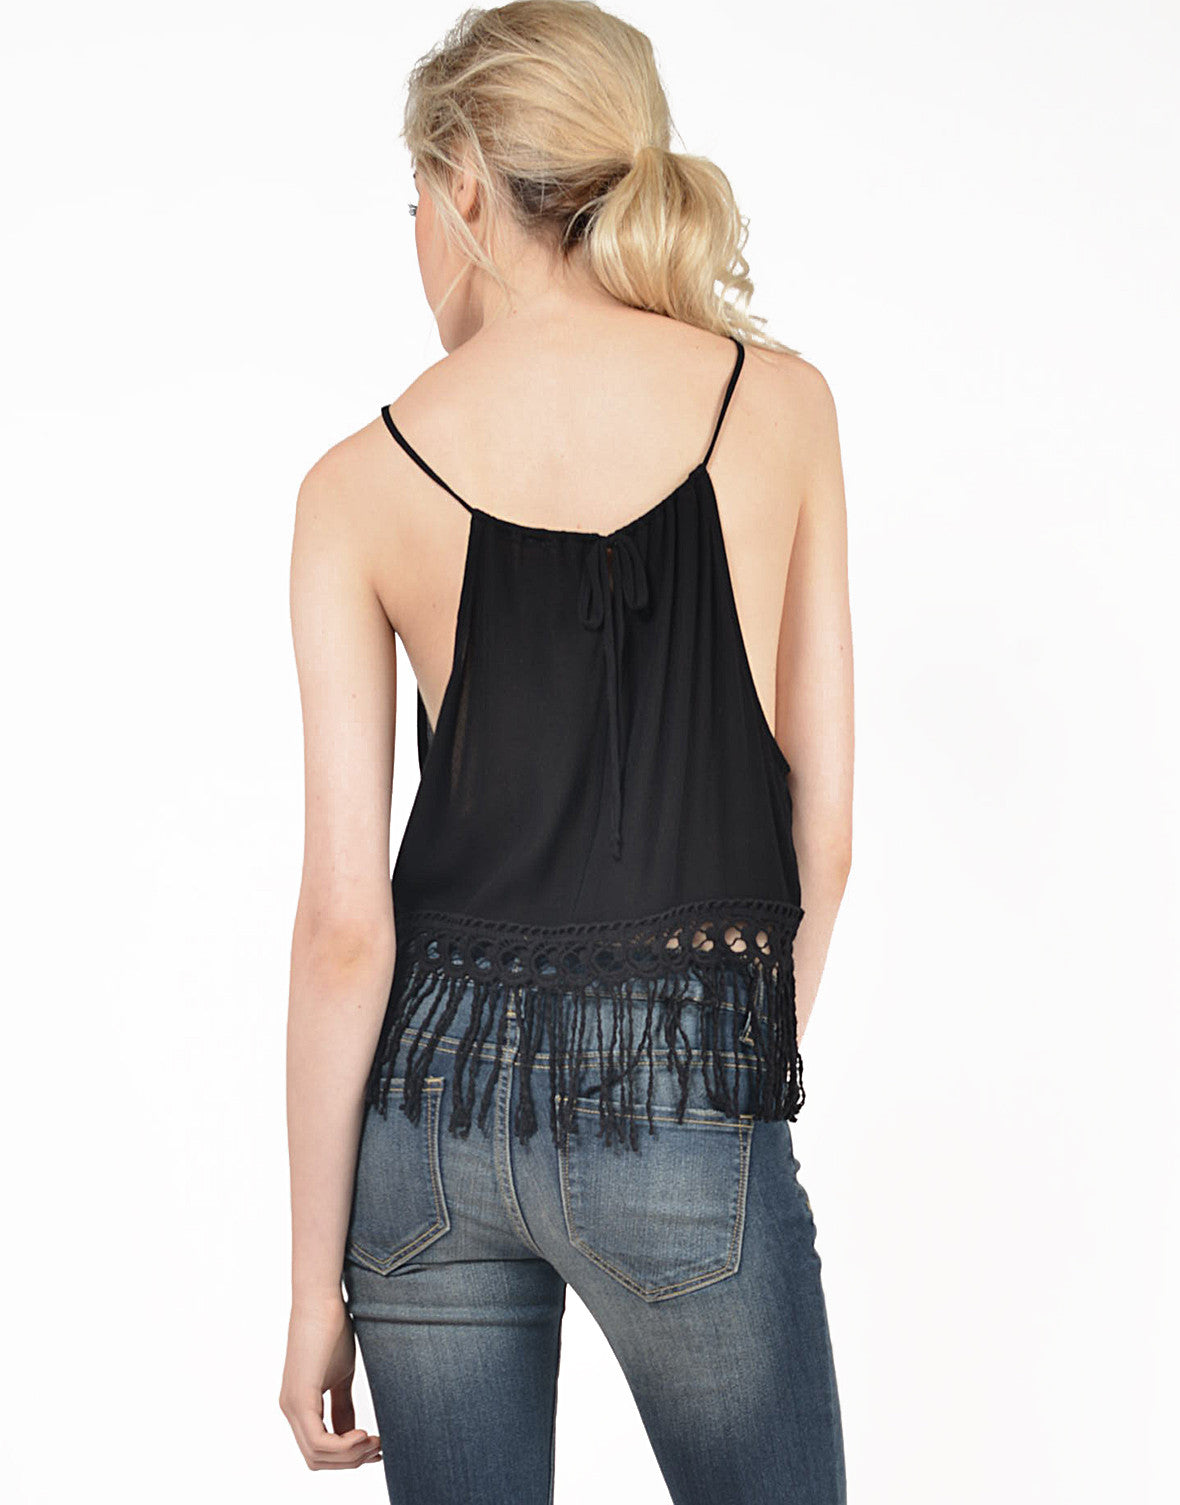 Back View of Fringed Halter Tie Back Tank